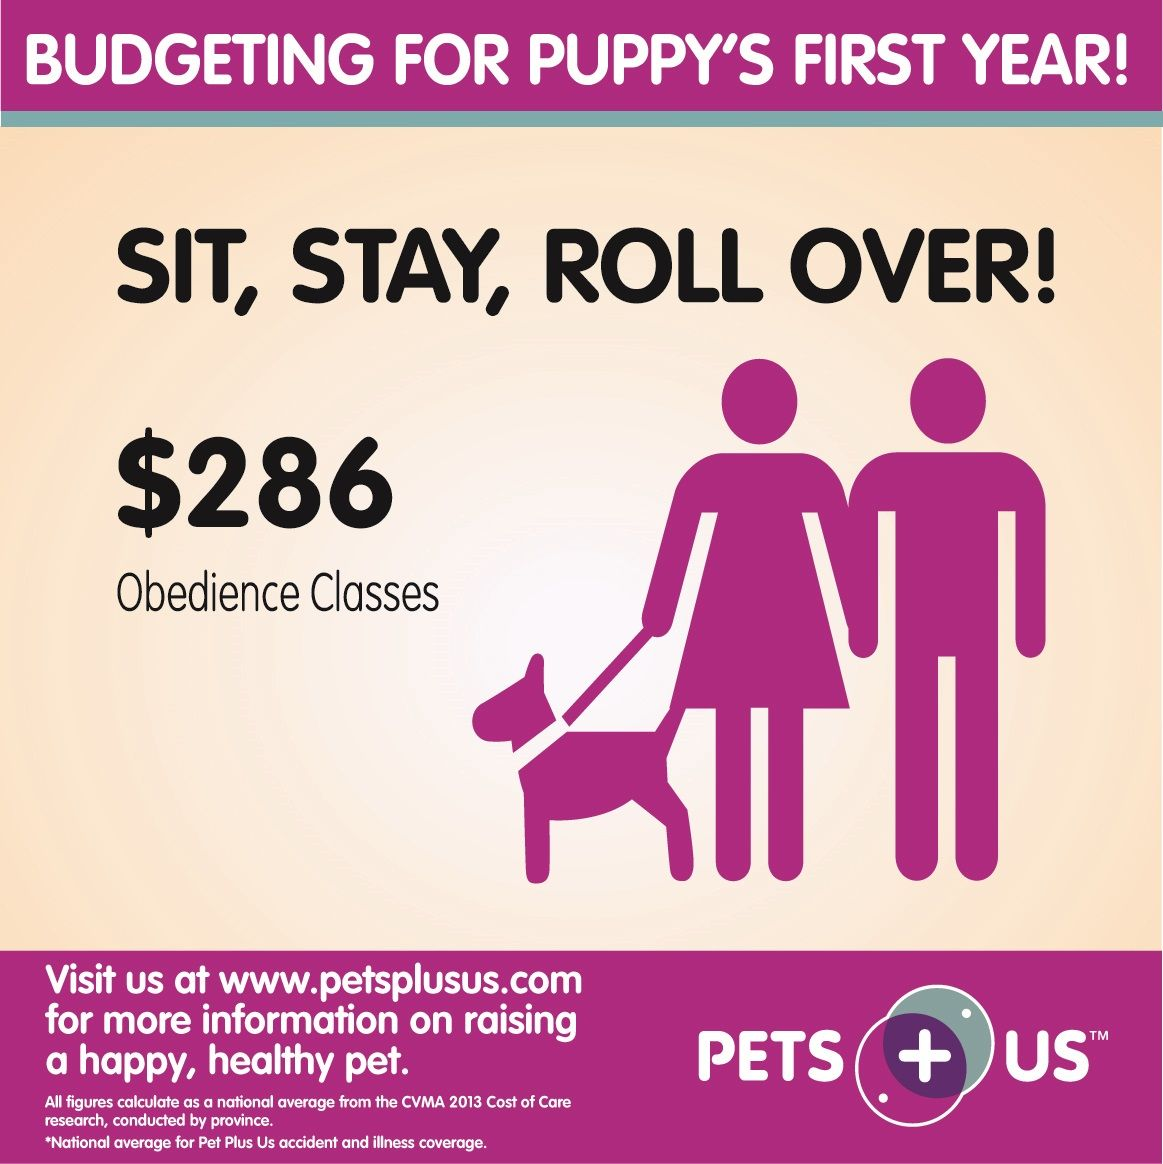 Budgeting For A New Puppy Infographic Puppy Infographic Animal Infographic Infographic